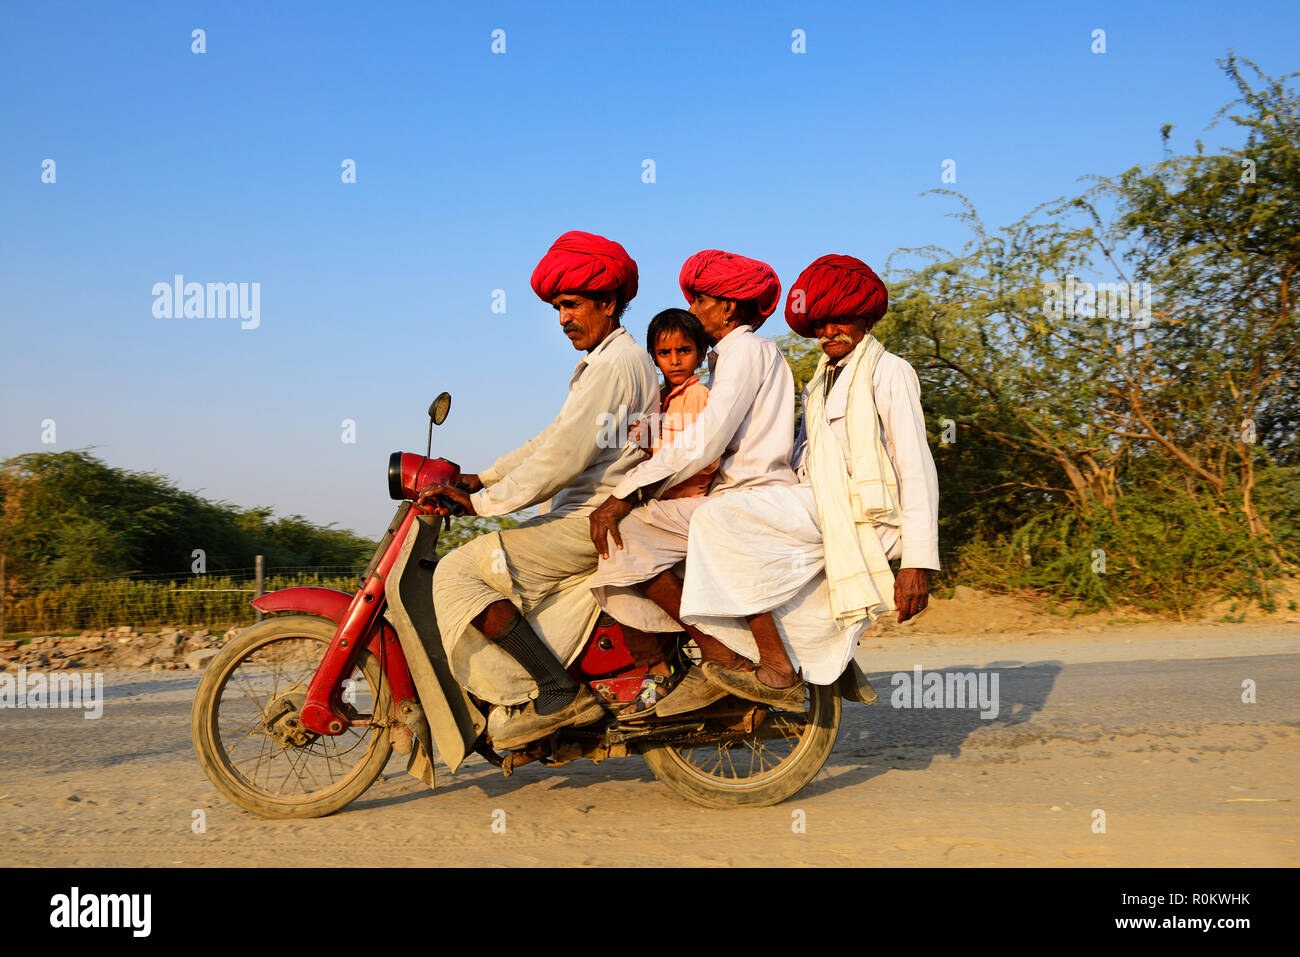 Four men from three generations riding together on a motorcycle, Rajasthan, India - Stock Image